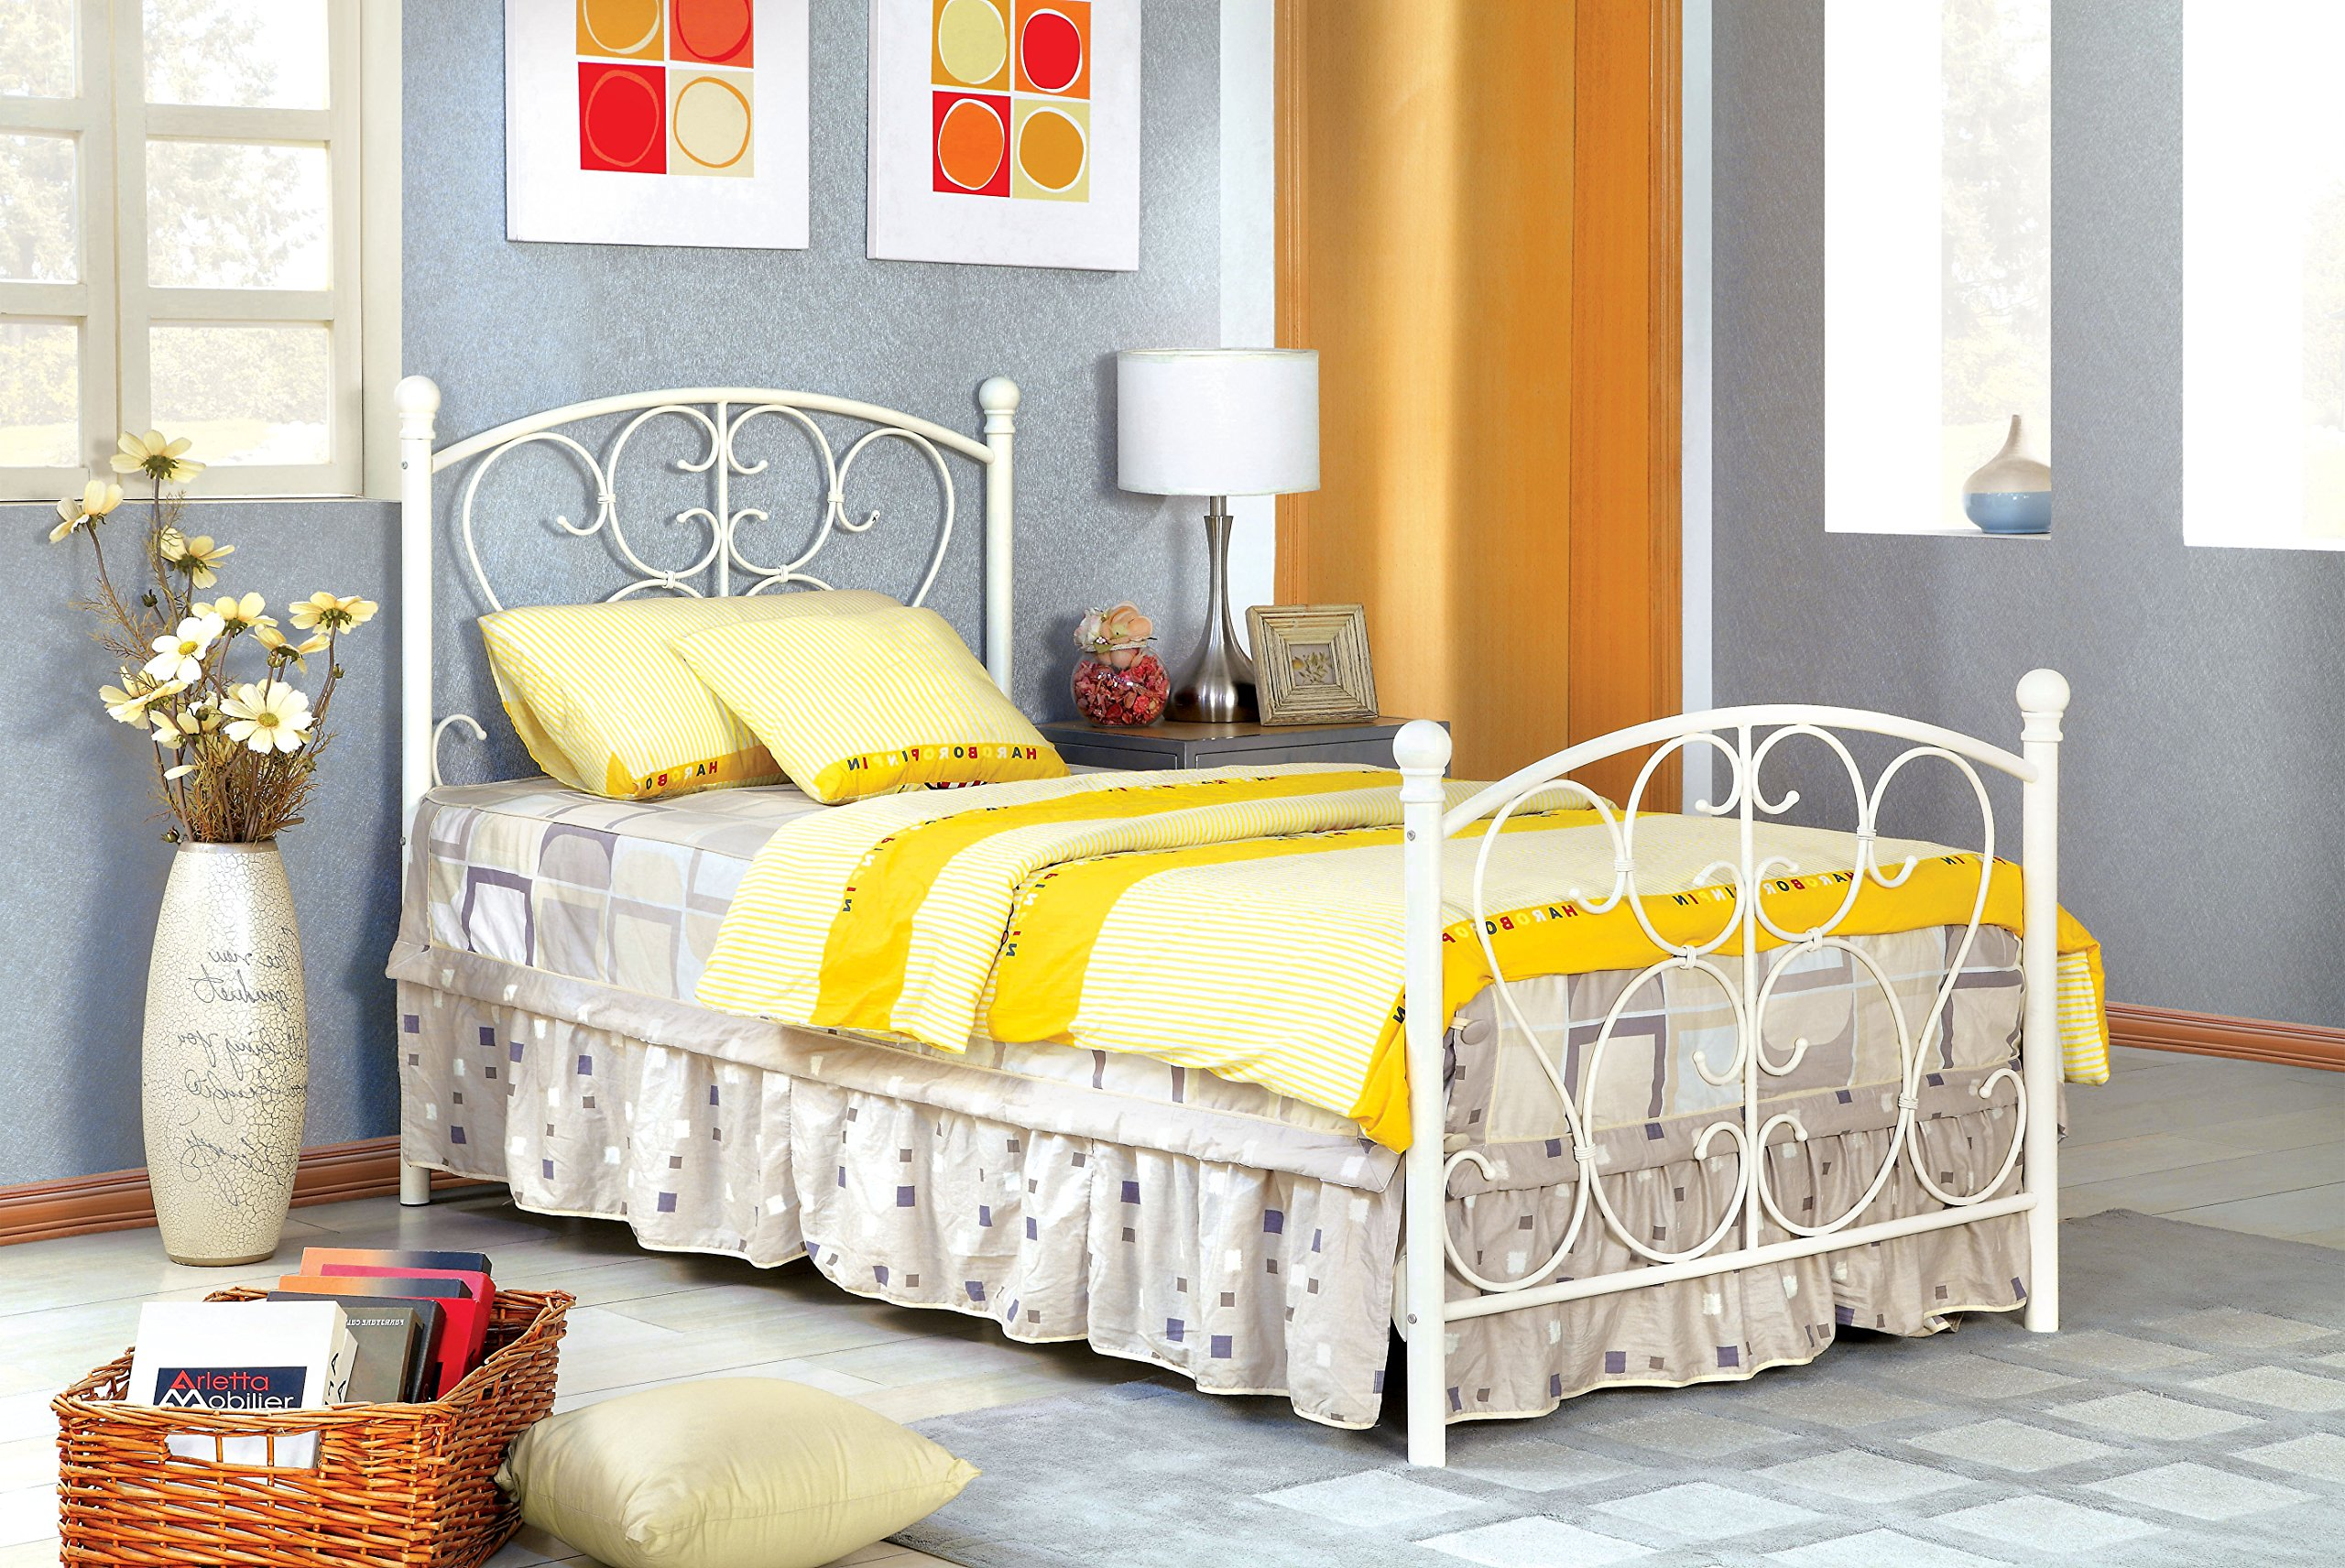 Furniture of America Delia Princess Metal Youth Bed, White by HOMES: Inside + Out